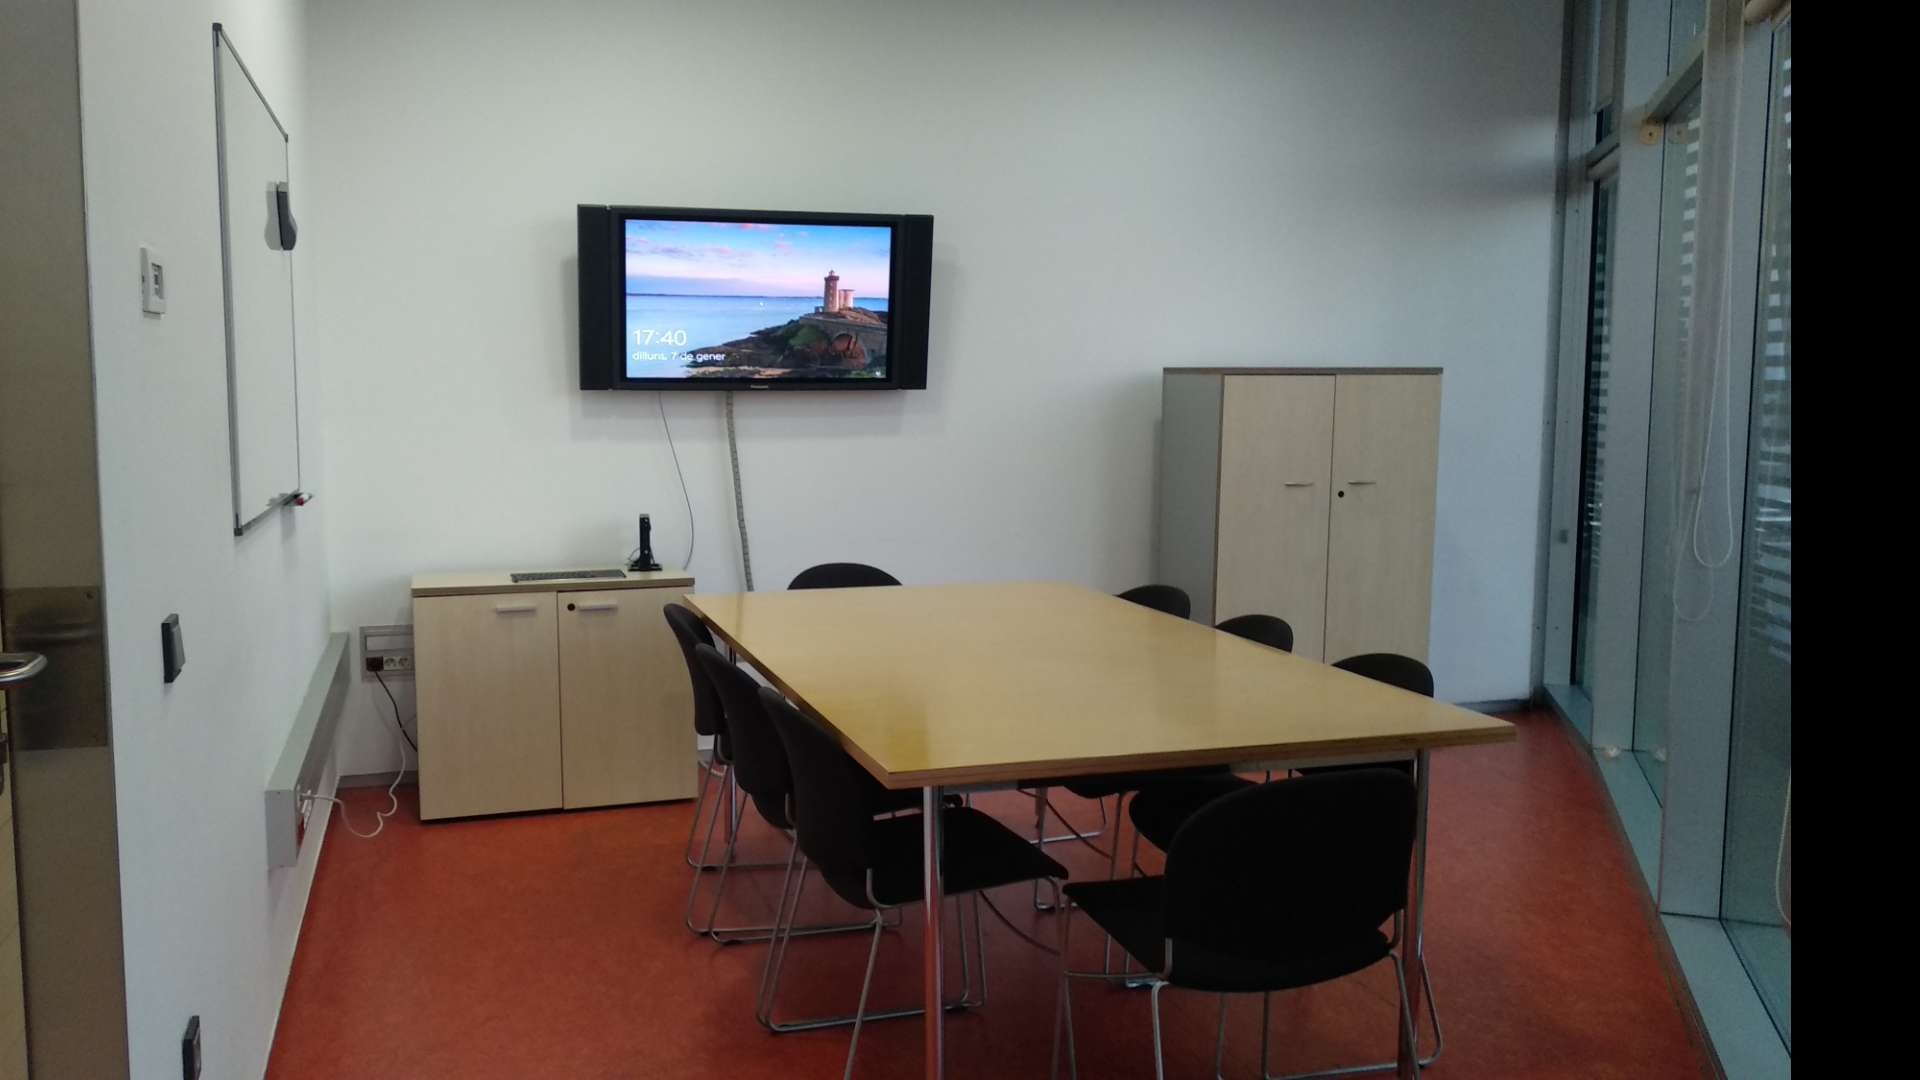 Picture 0 of a meeting room in business_centre PRBB in Barcelona